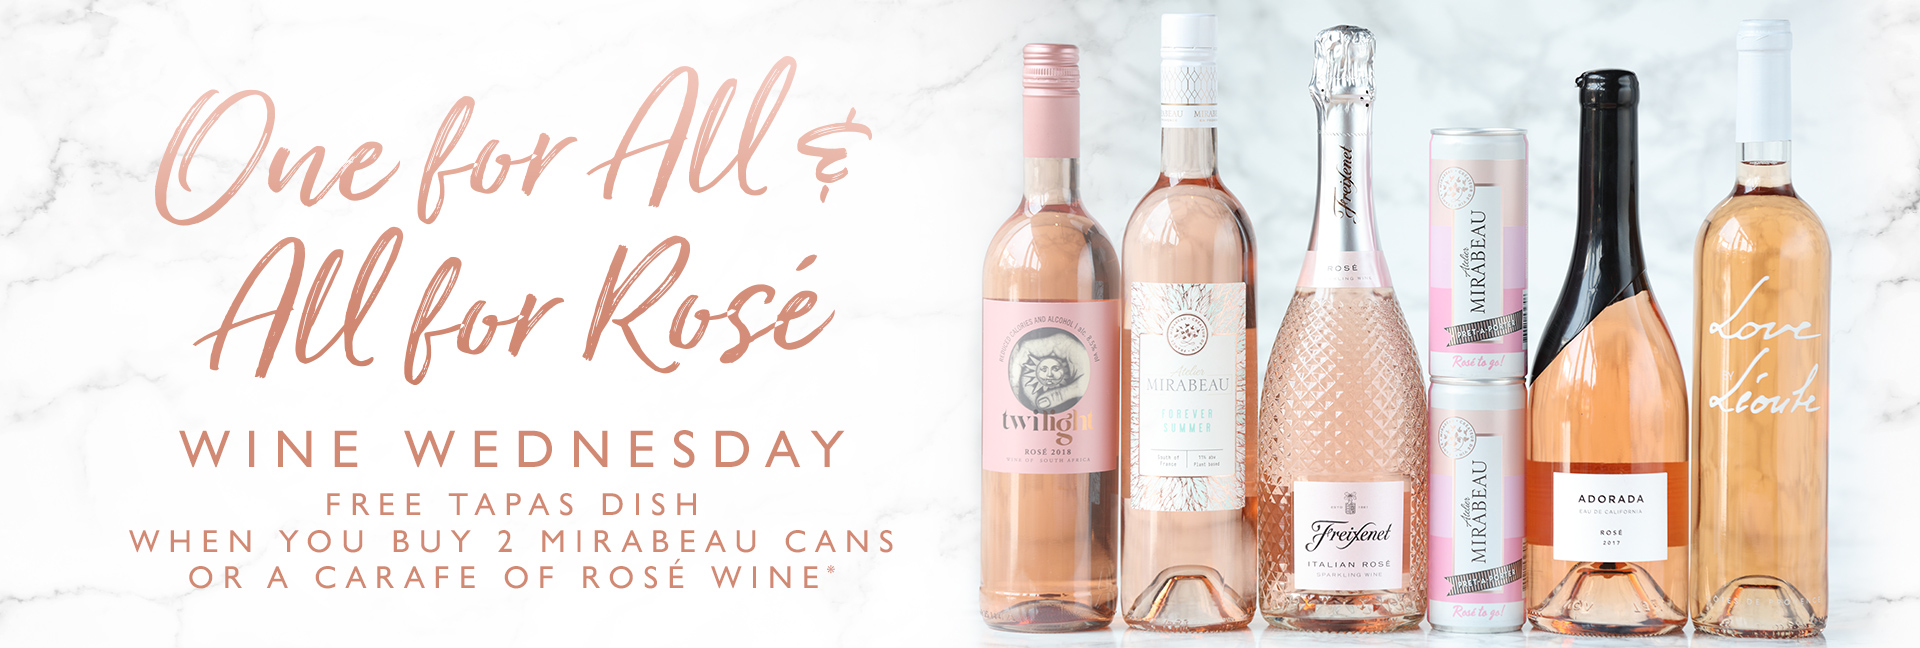 Wine Wednesday at All Bar One Cambridge